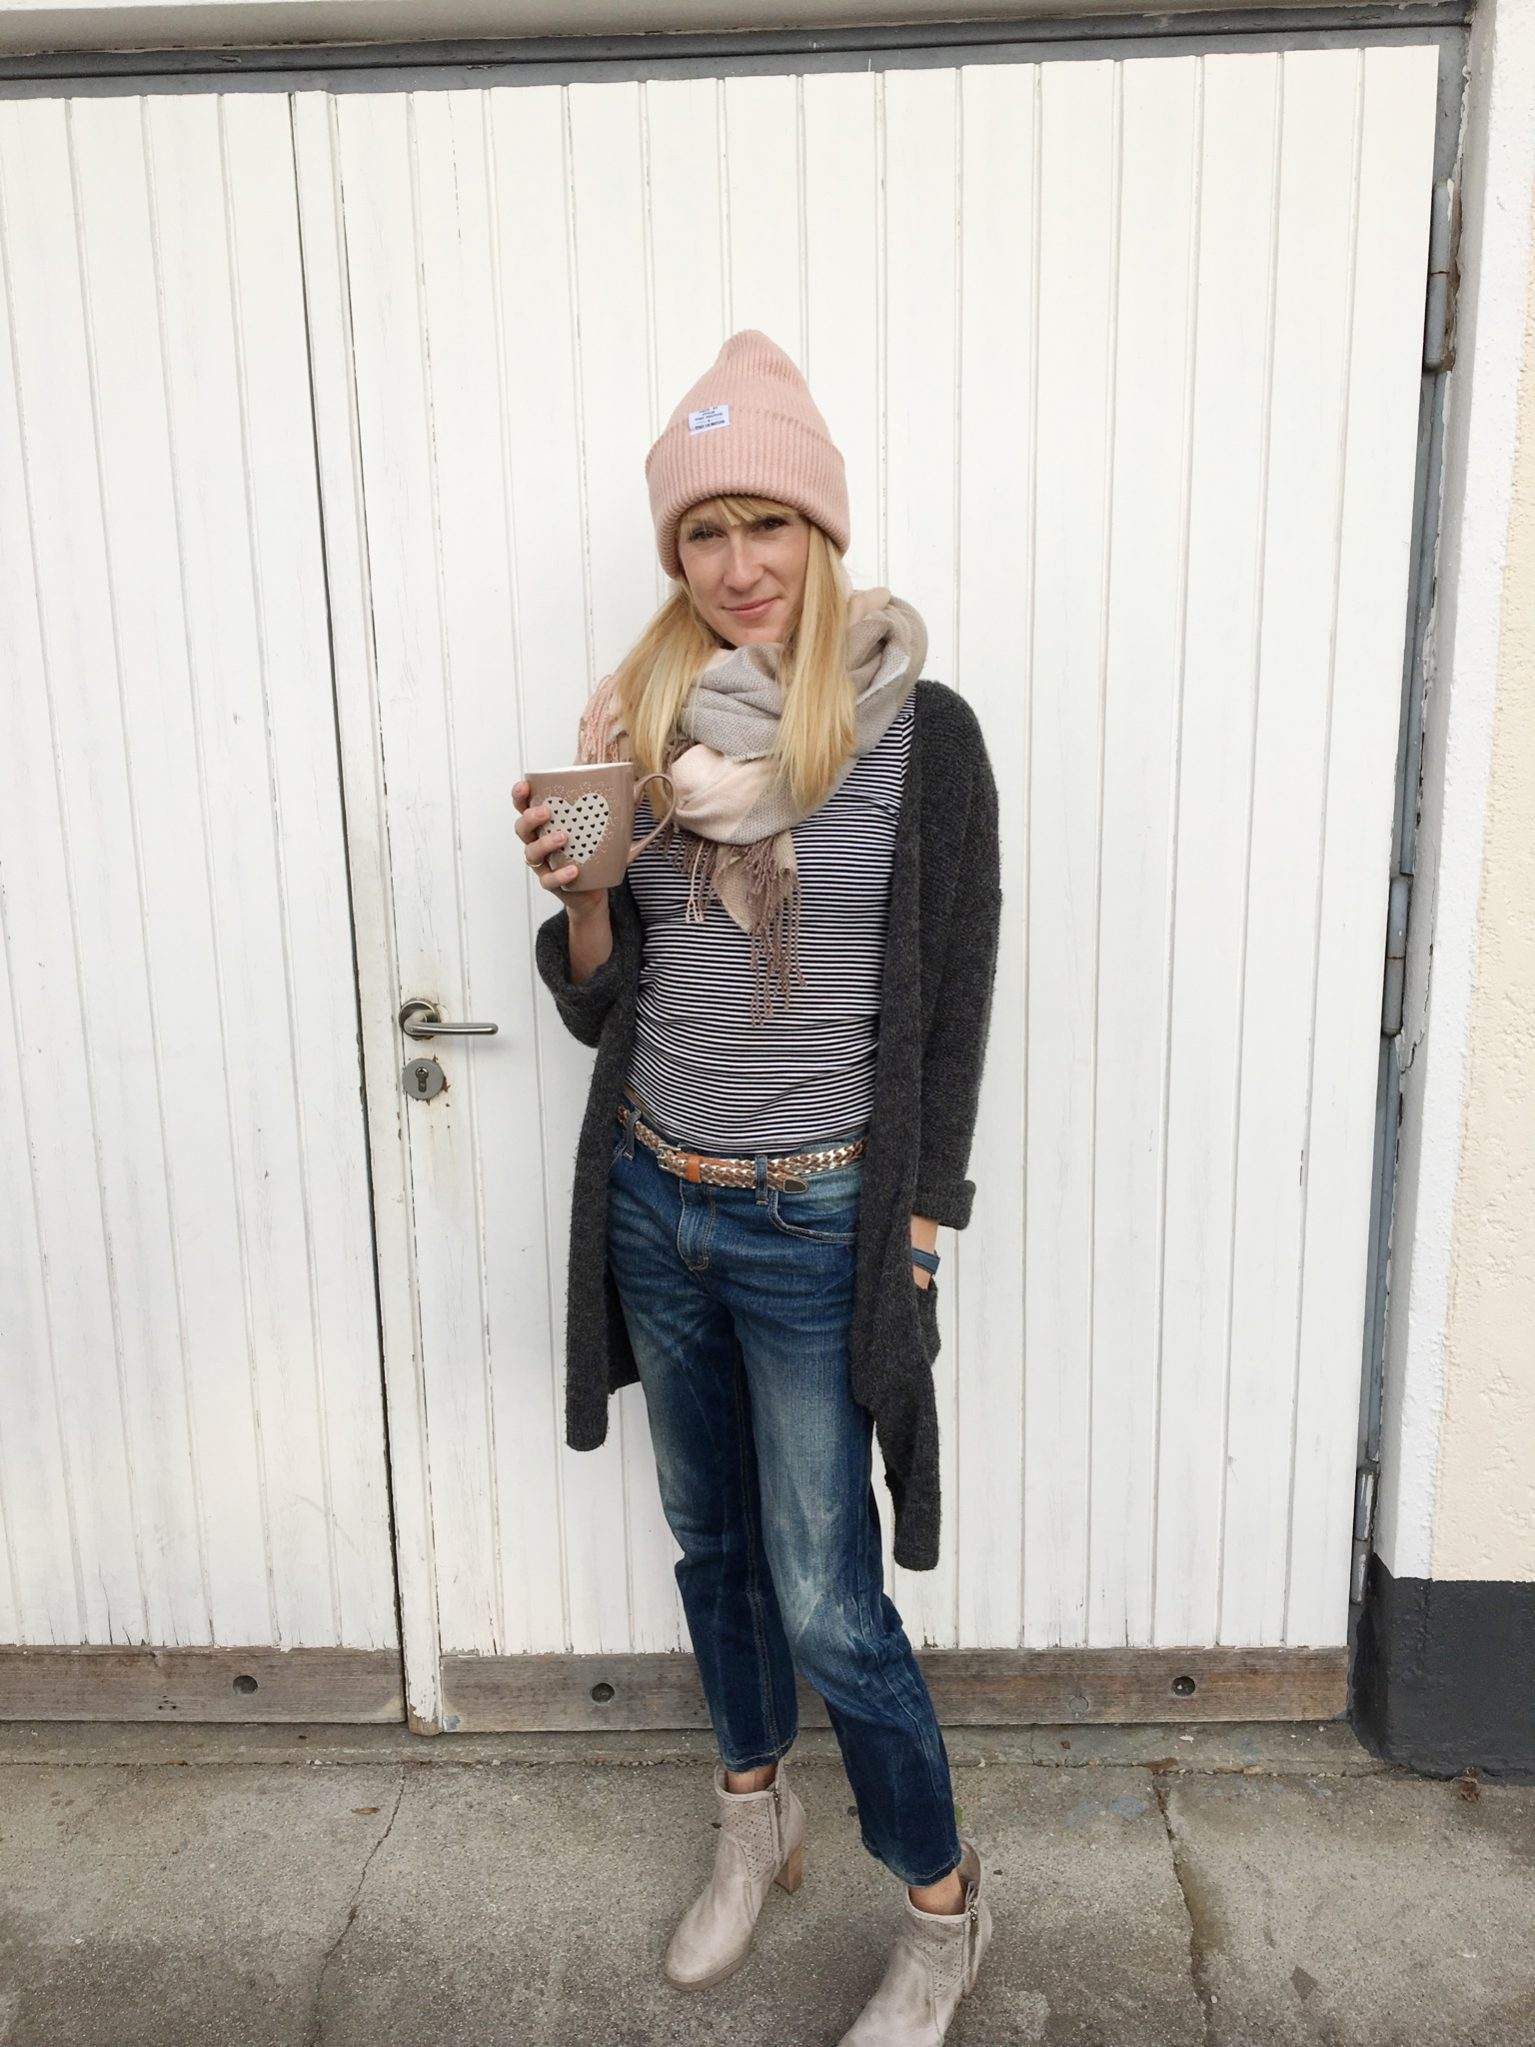 kuschelige Accessoires, Herbstlook, Cardigan, Strickjacke, Schal und Mütze, Outfitpost, Inspiration, Mamainstyle, Modemama, Mamablog, Lookoftheday, Strickcardigan, Shoppingtipp